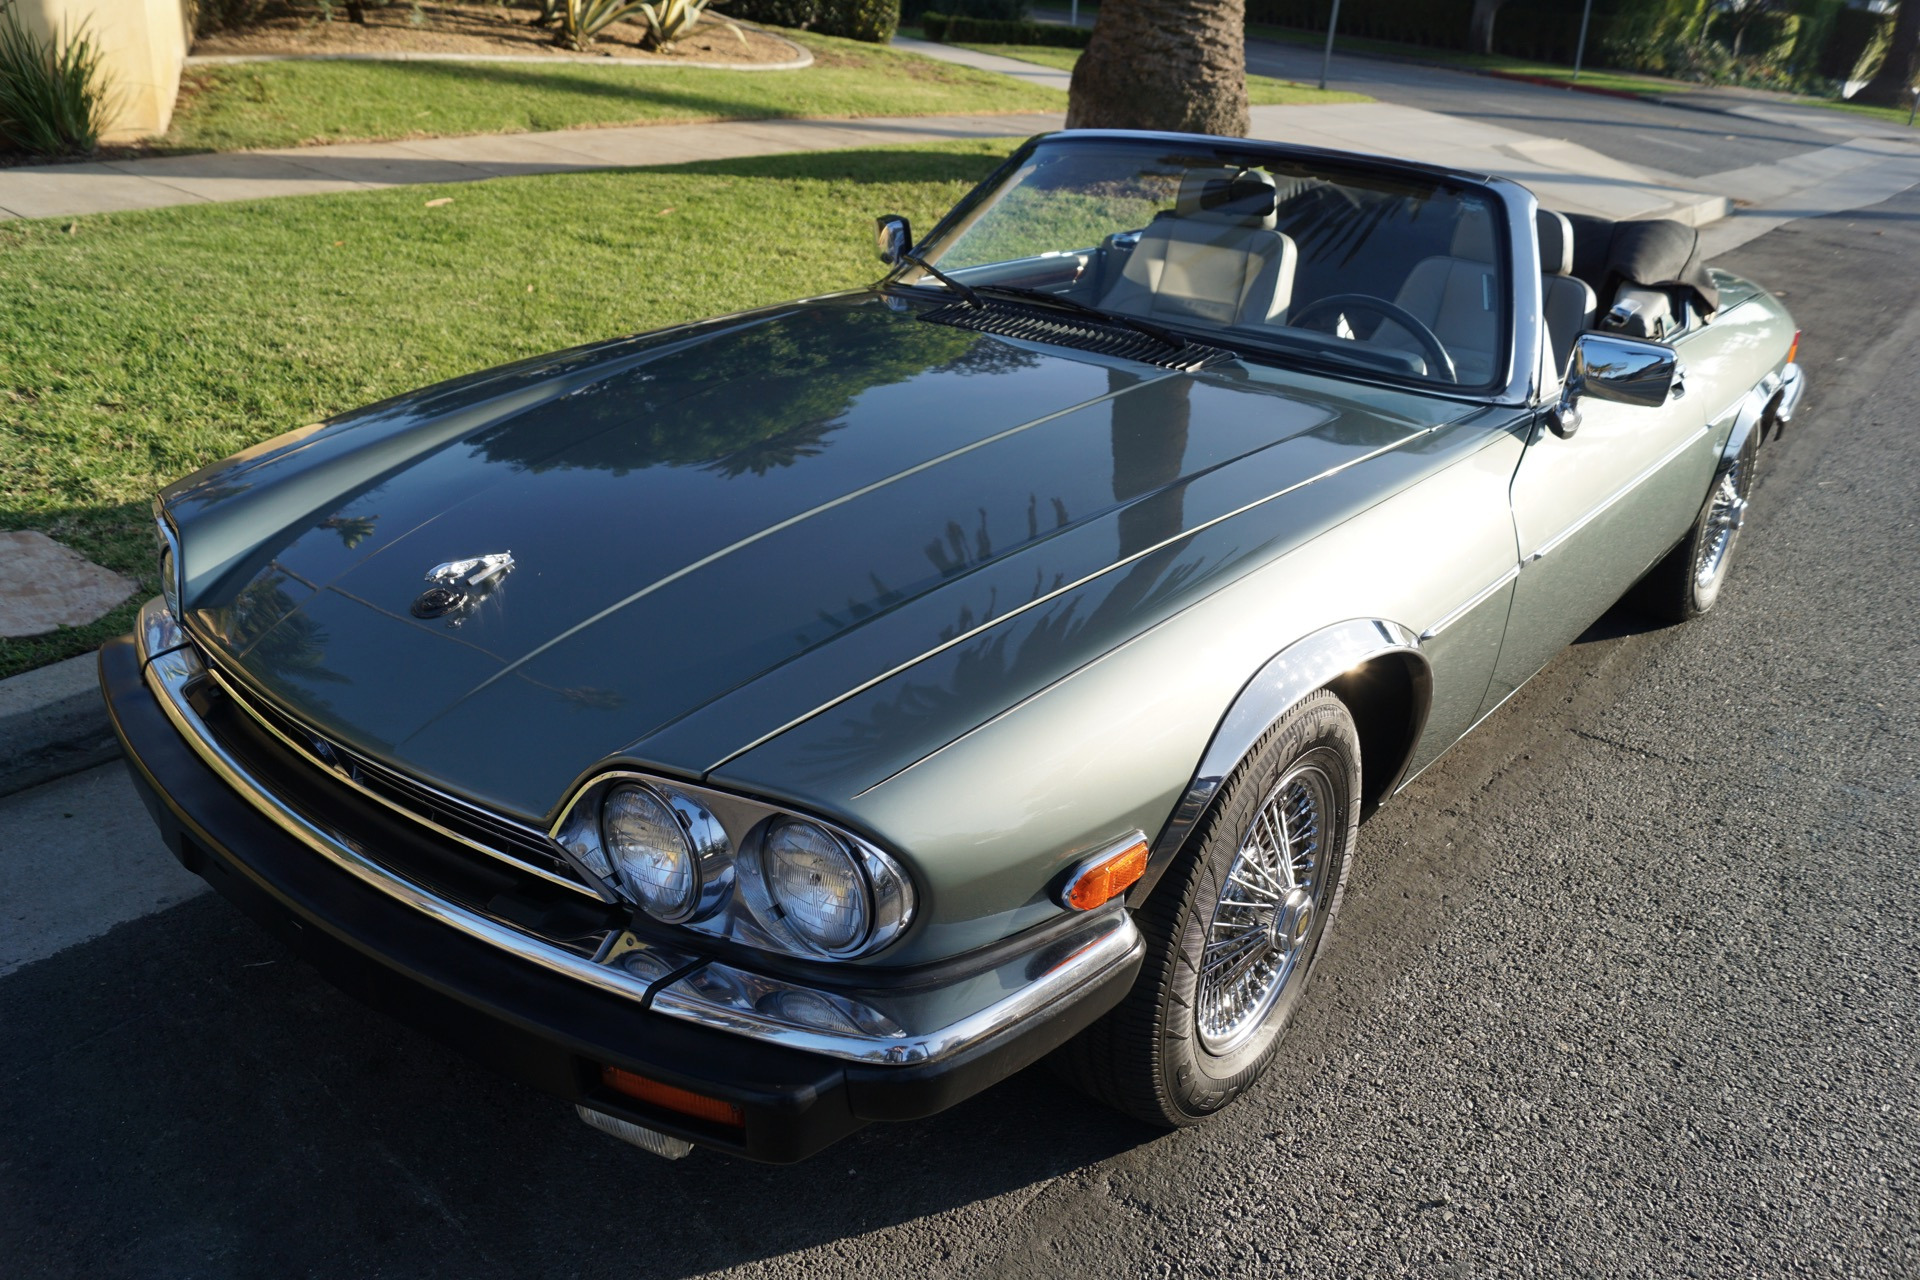 used xkr convertible seymour jaguar vehicle details large pope img